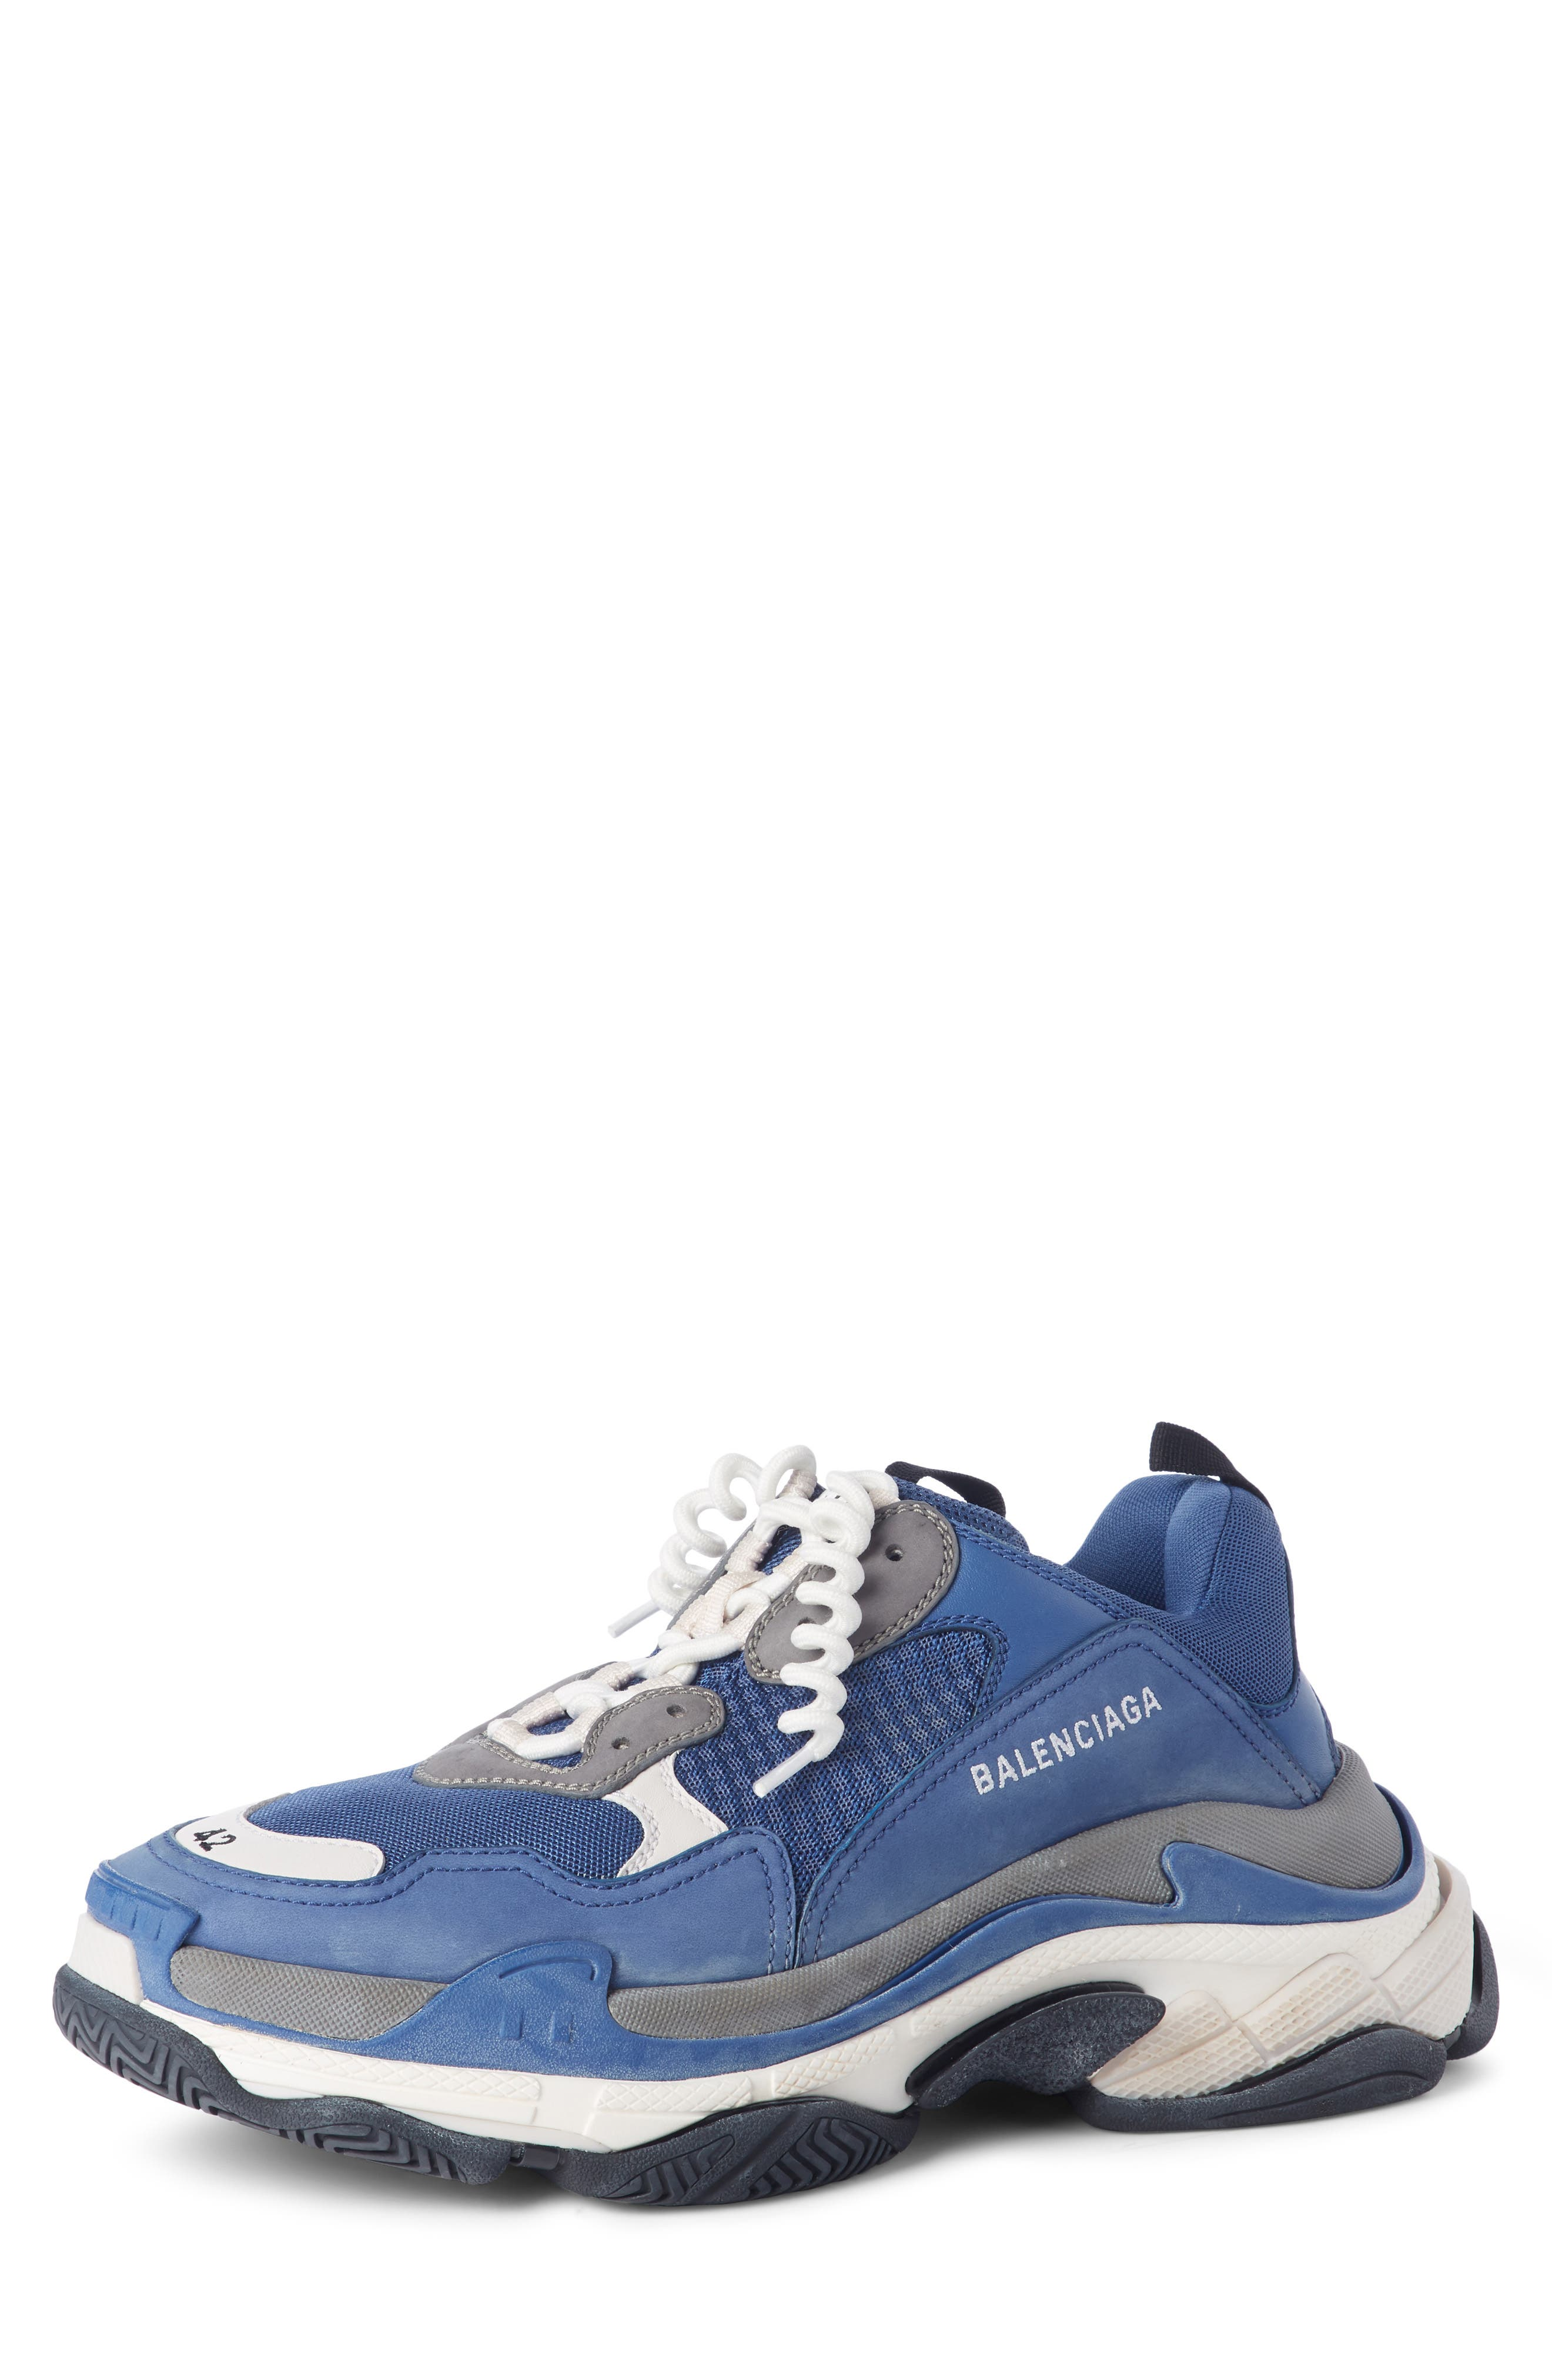 Triple S Retro Sneaker,                             Main thumbnail 1, color,                             NAVY